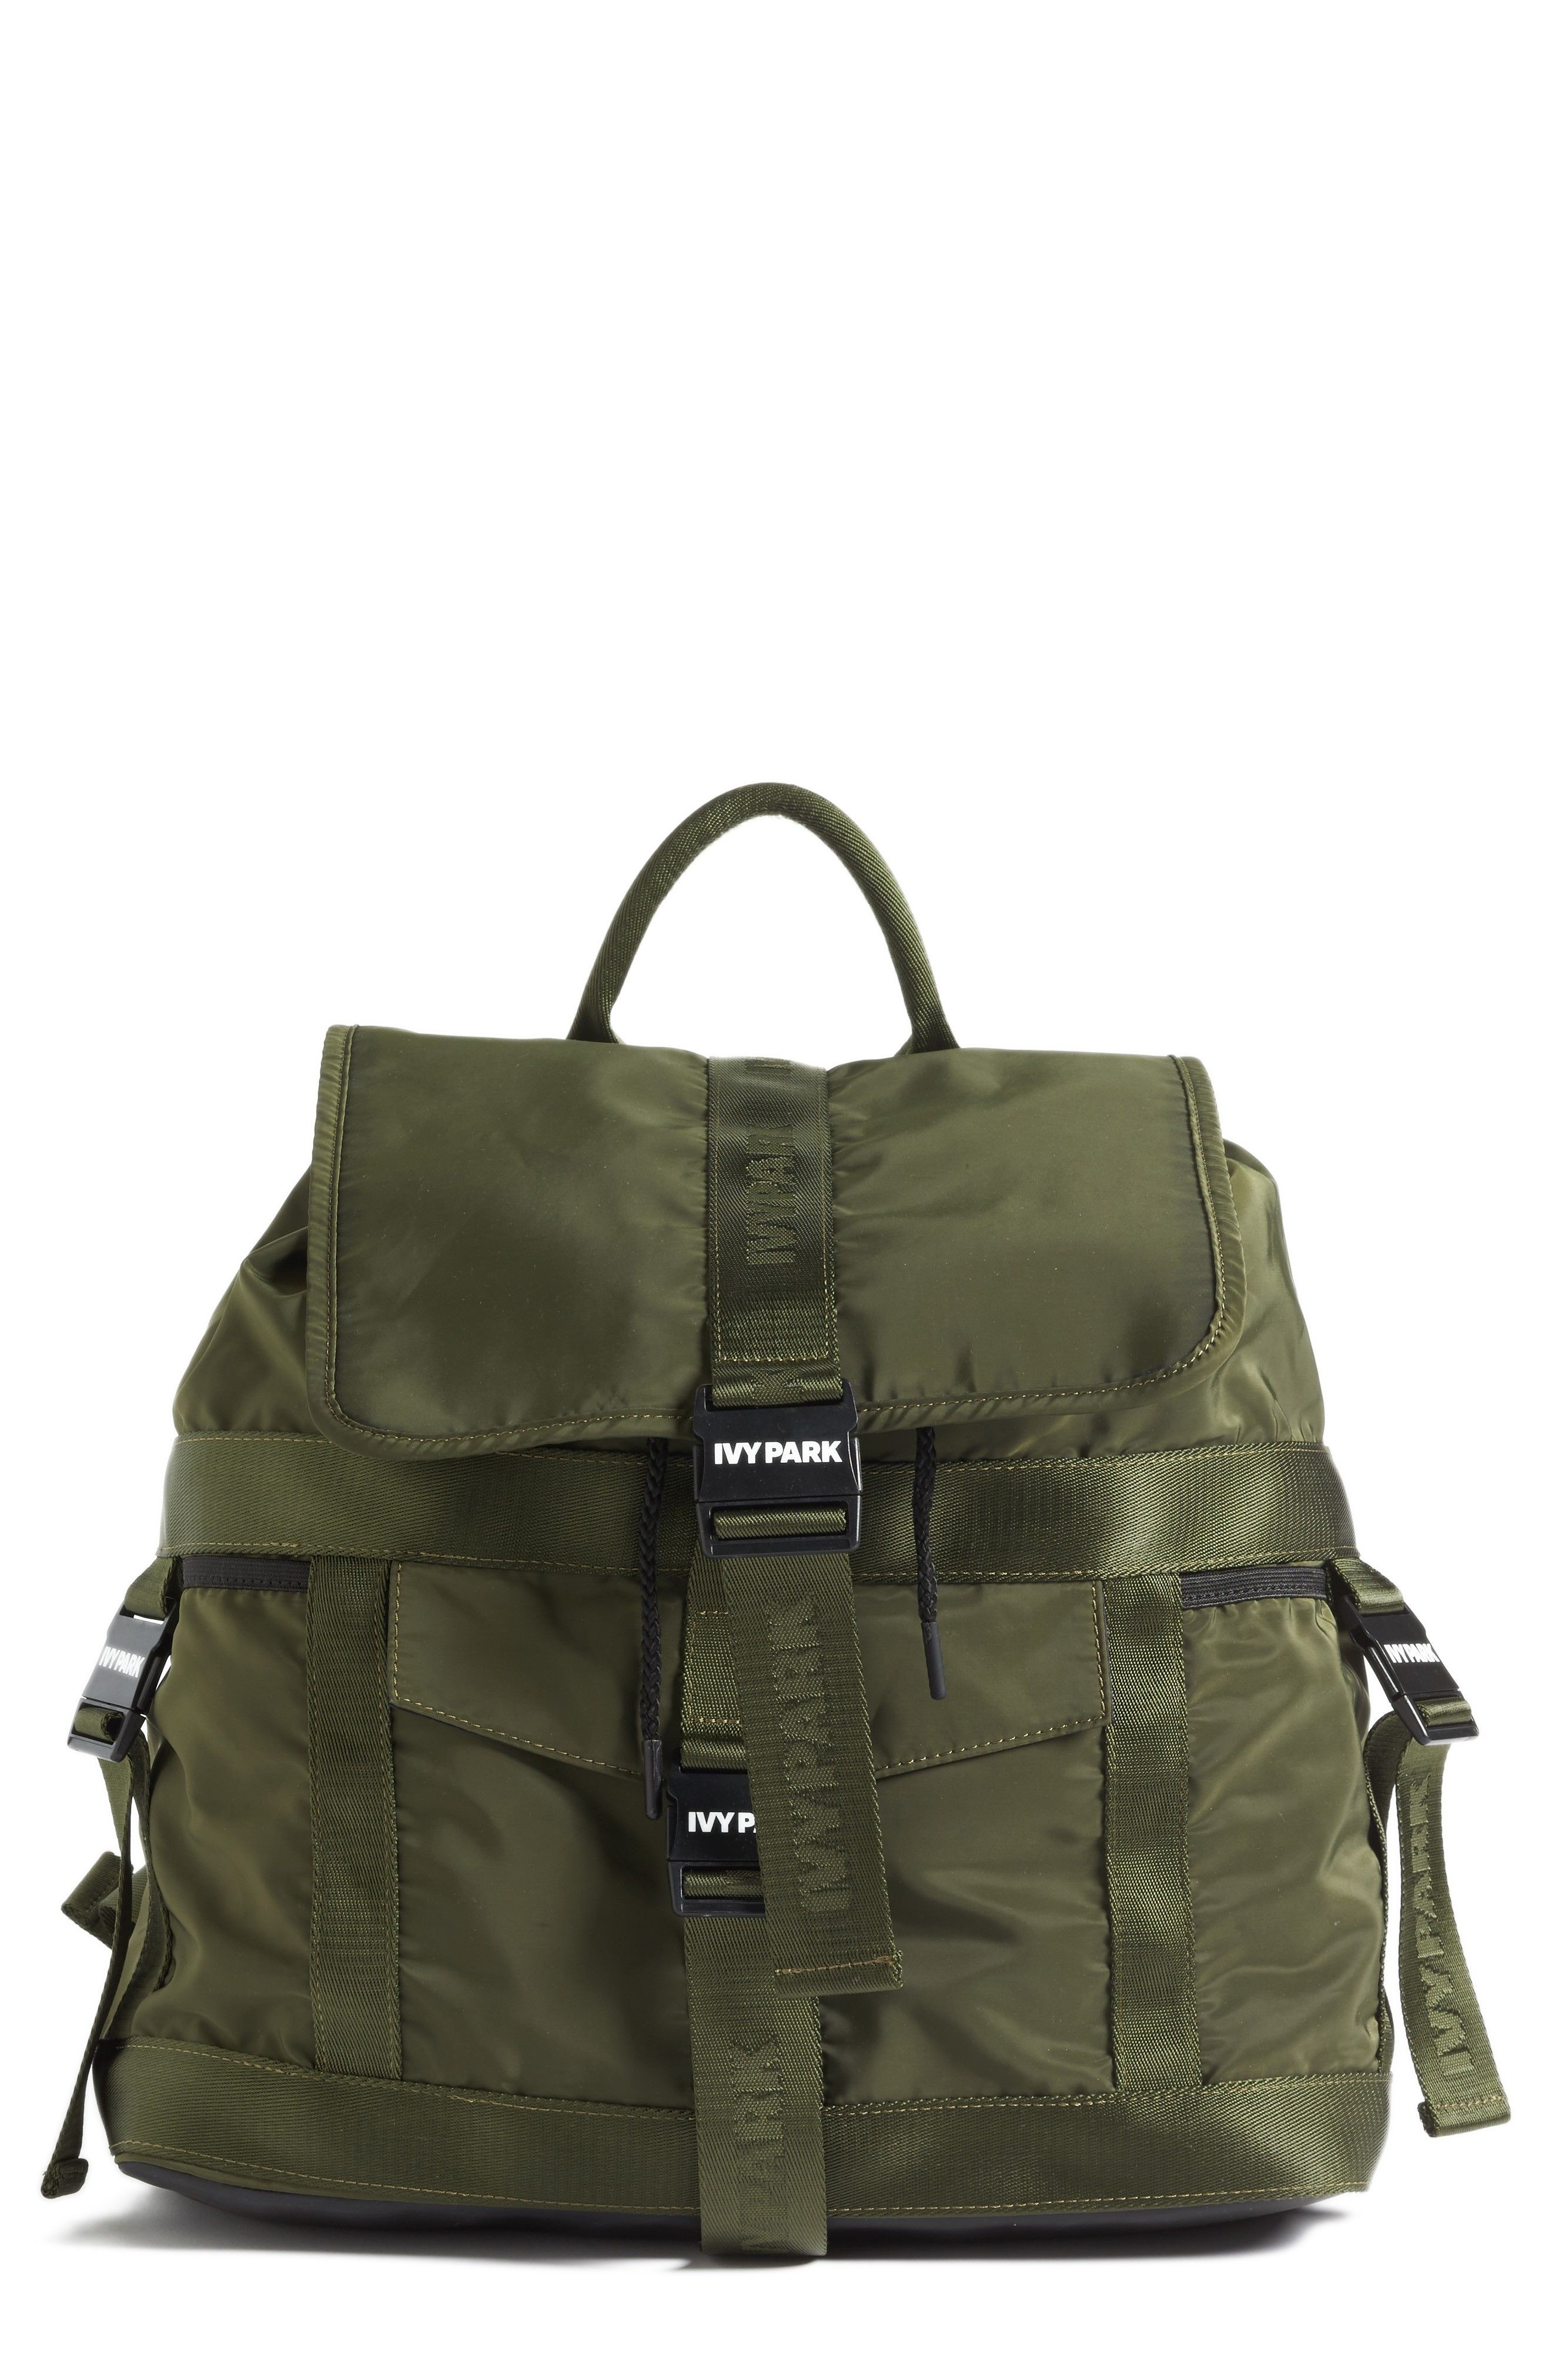 New IVY PARK Parachute Strap Backpack online. Find the great Tumi Bags from  top store. Sku mqzd21132pdgh69048 8a634f1e463cd